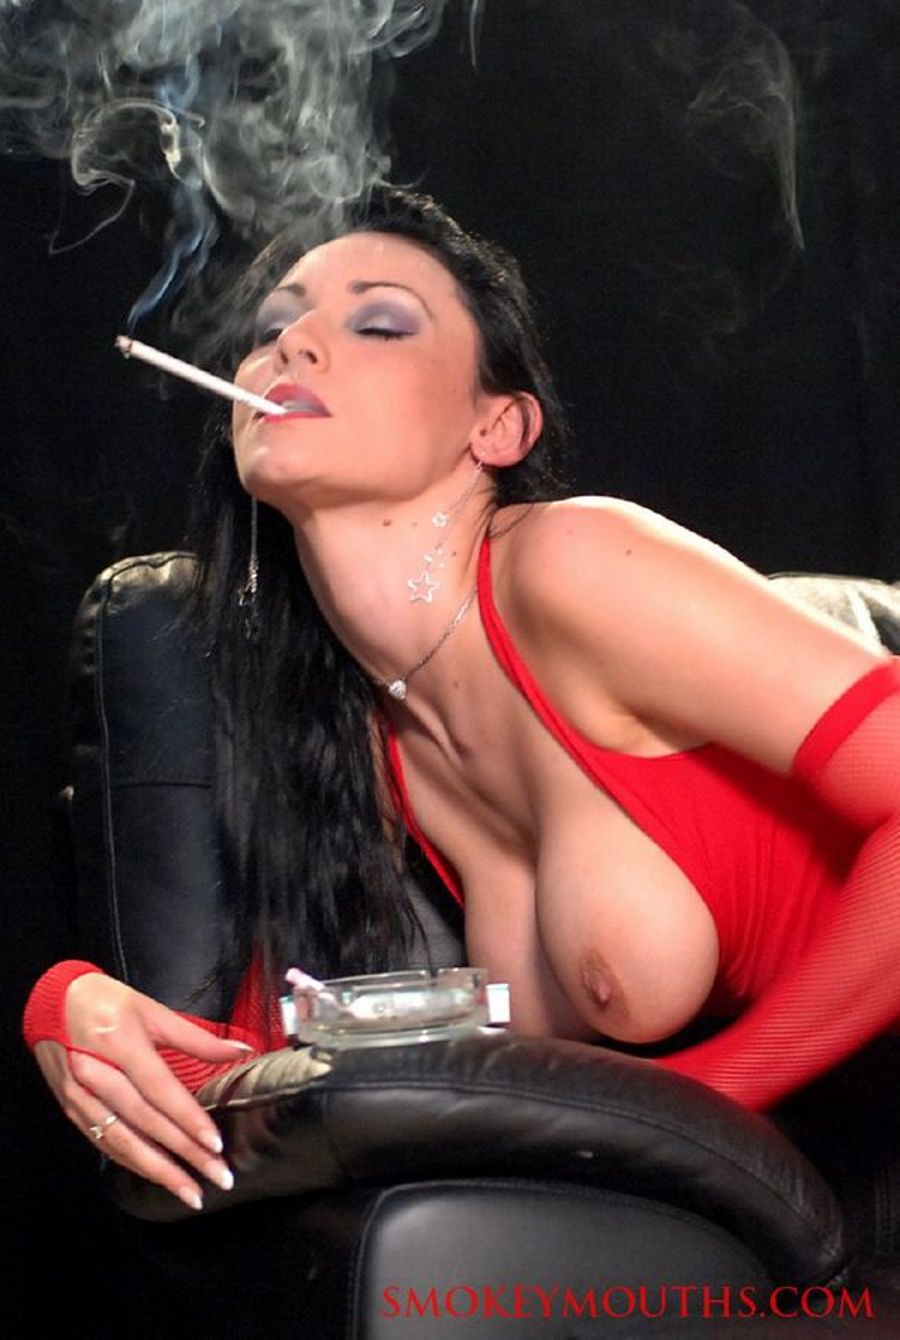 Smoking Fetish Web Sites And Links